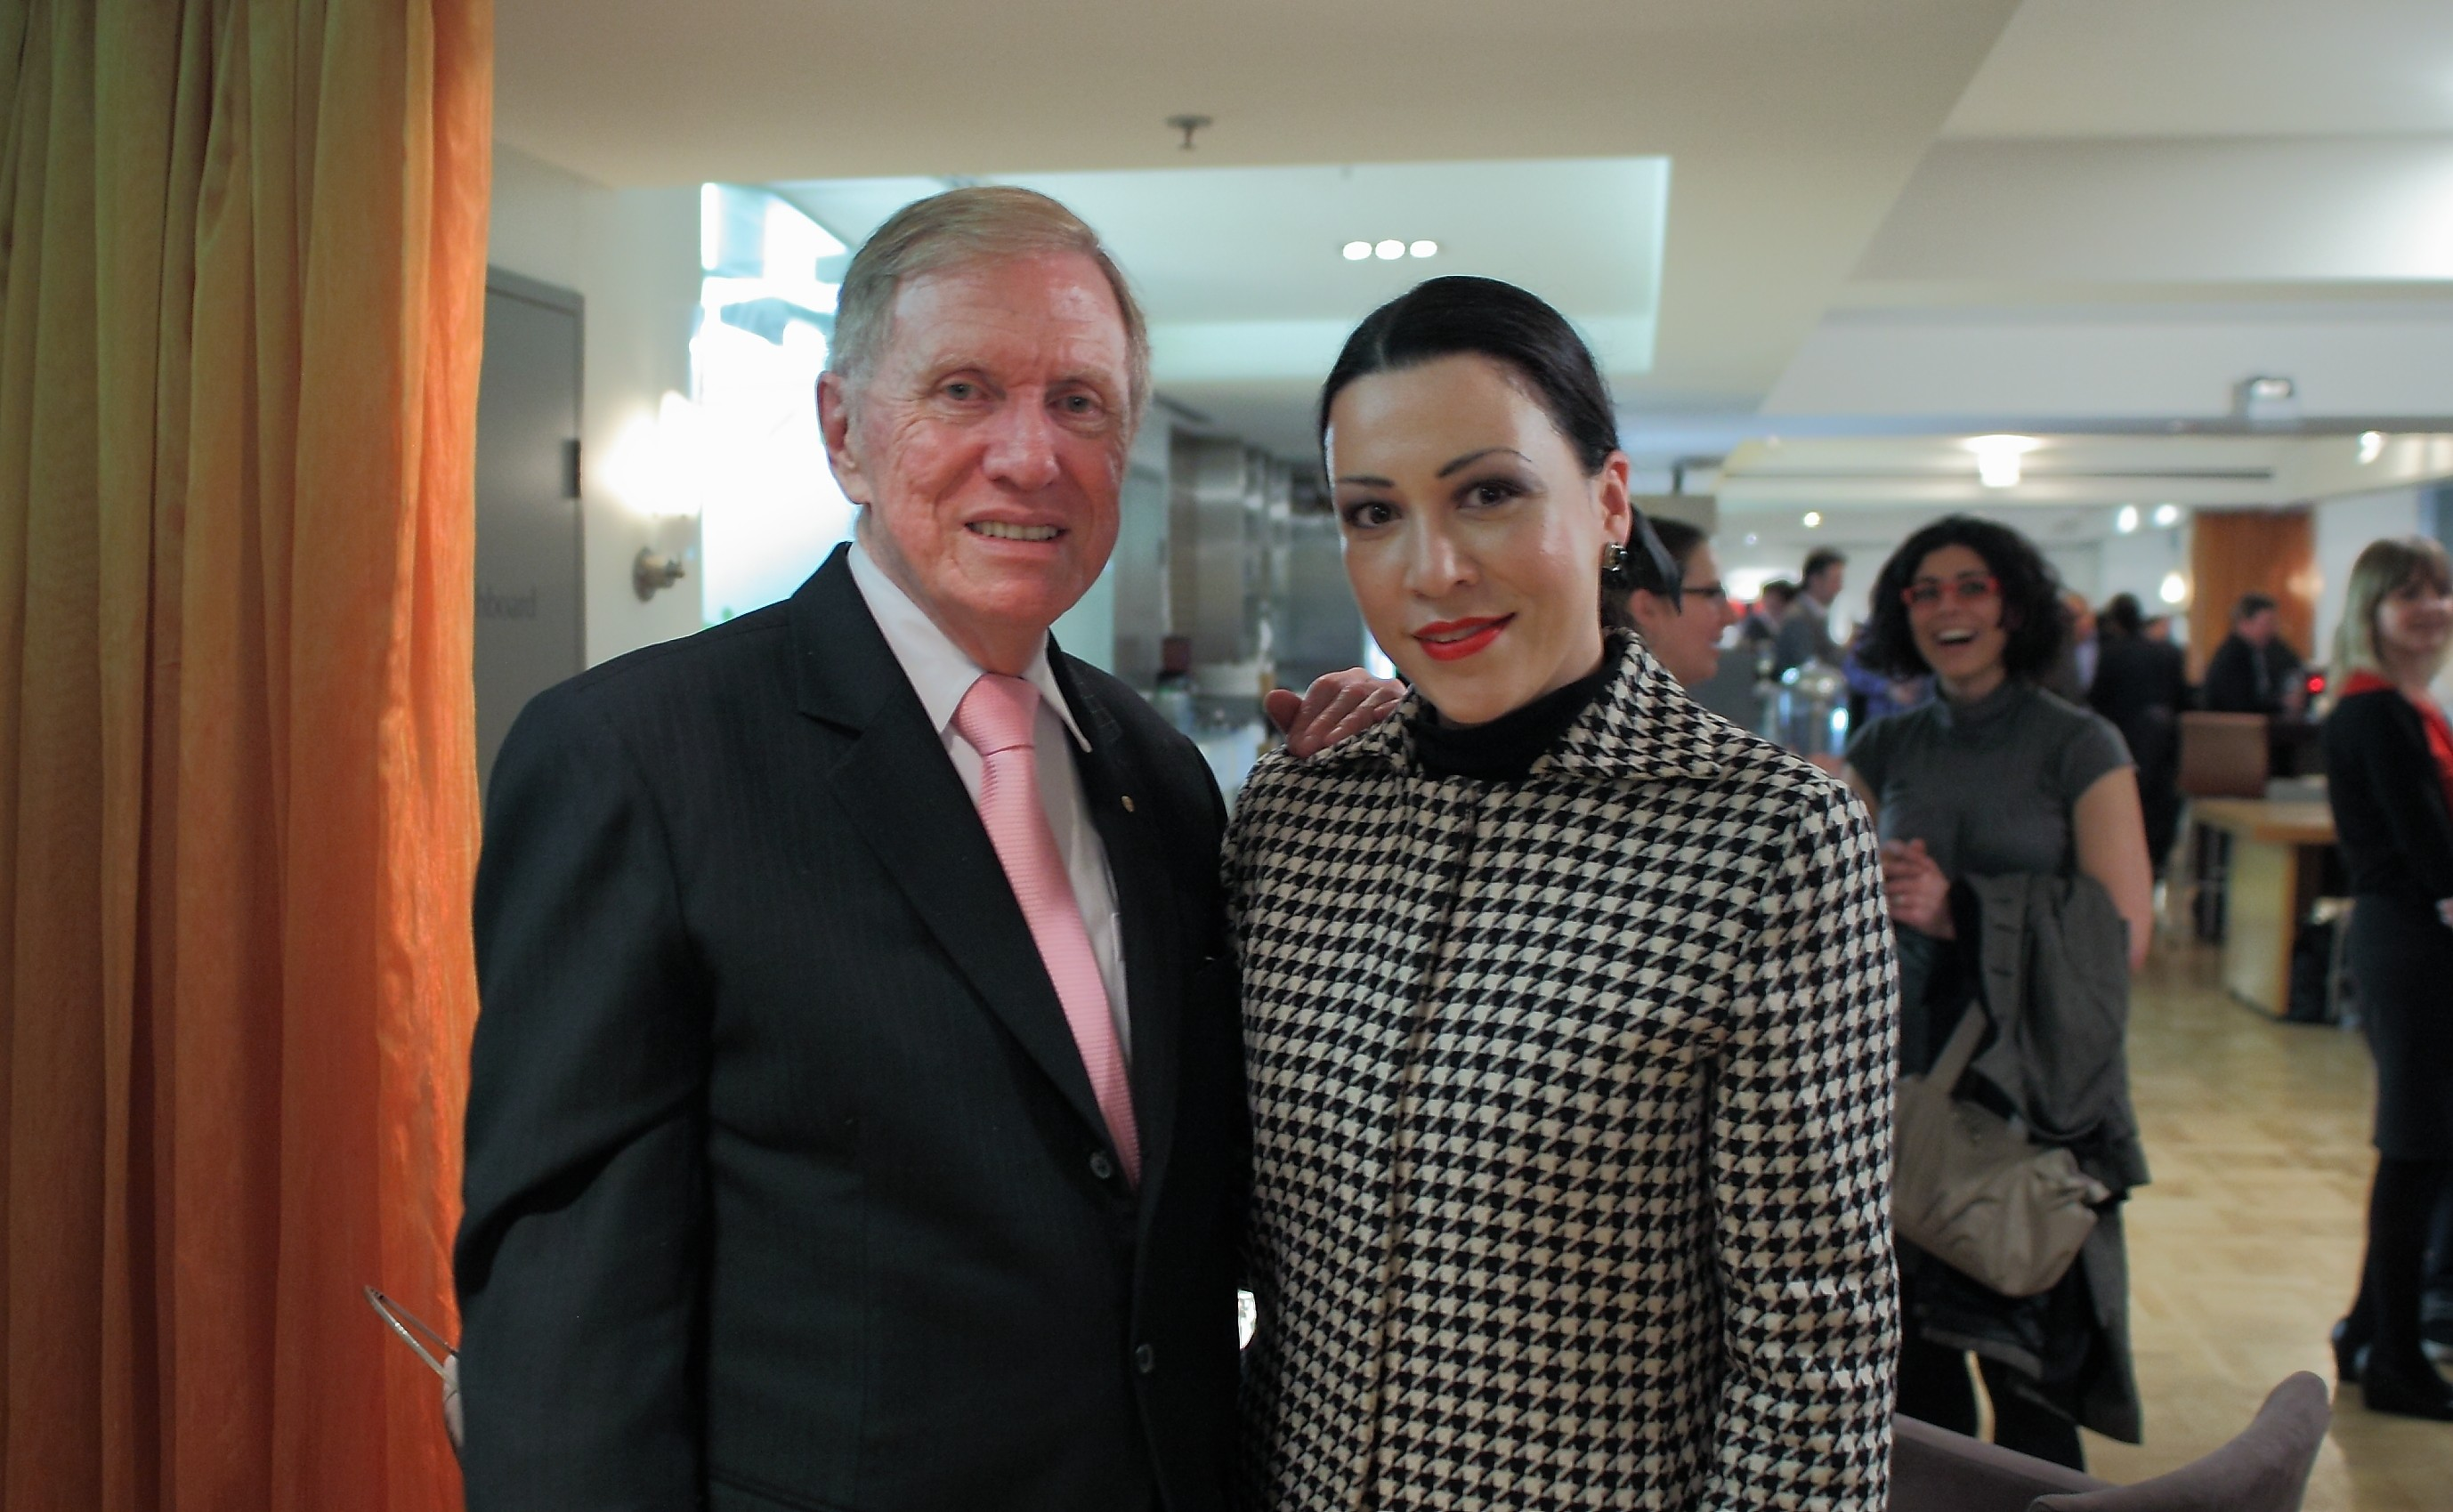 The Hon. Michael Kirby; Marian Clarkin of counsel